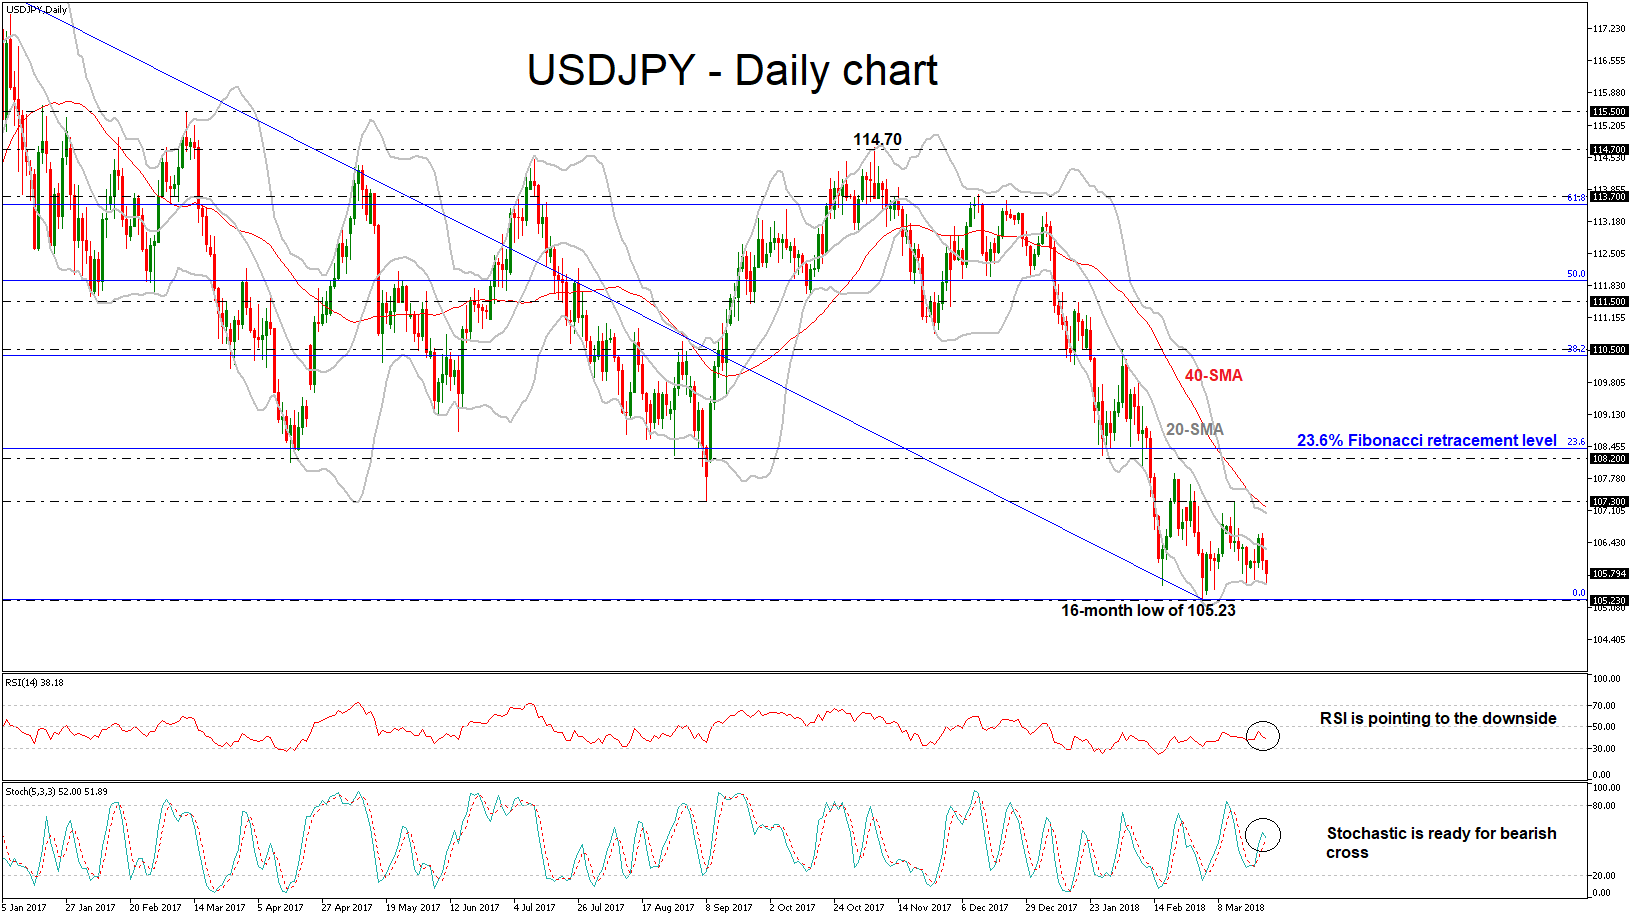 USD/JPY 22 MAR 2018 | EconAlerts